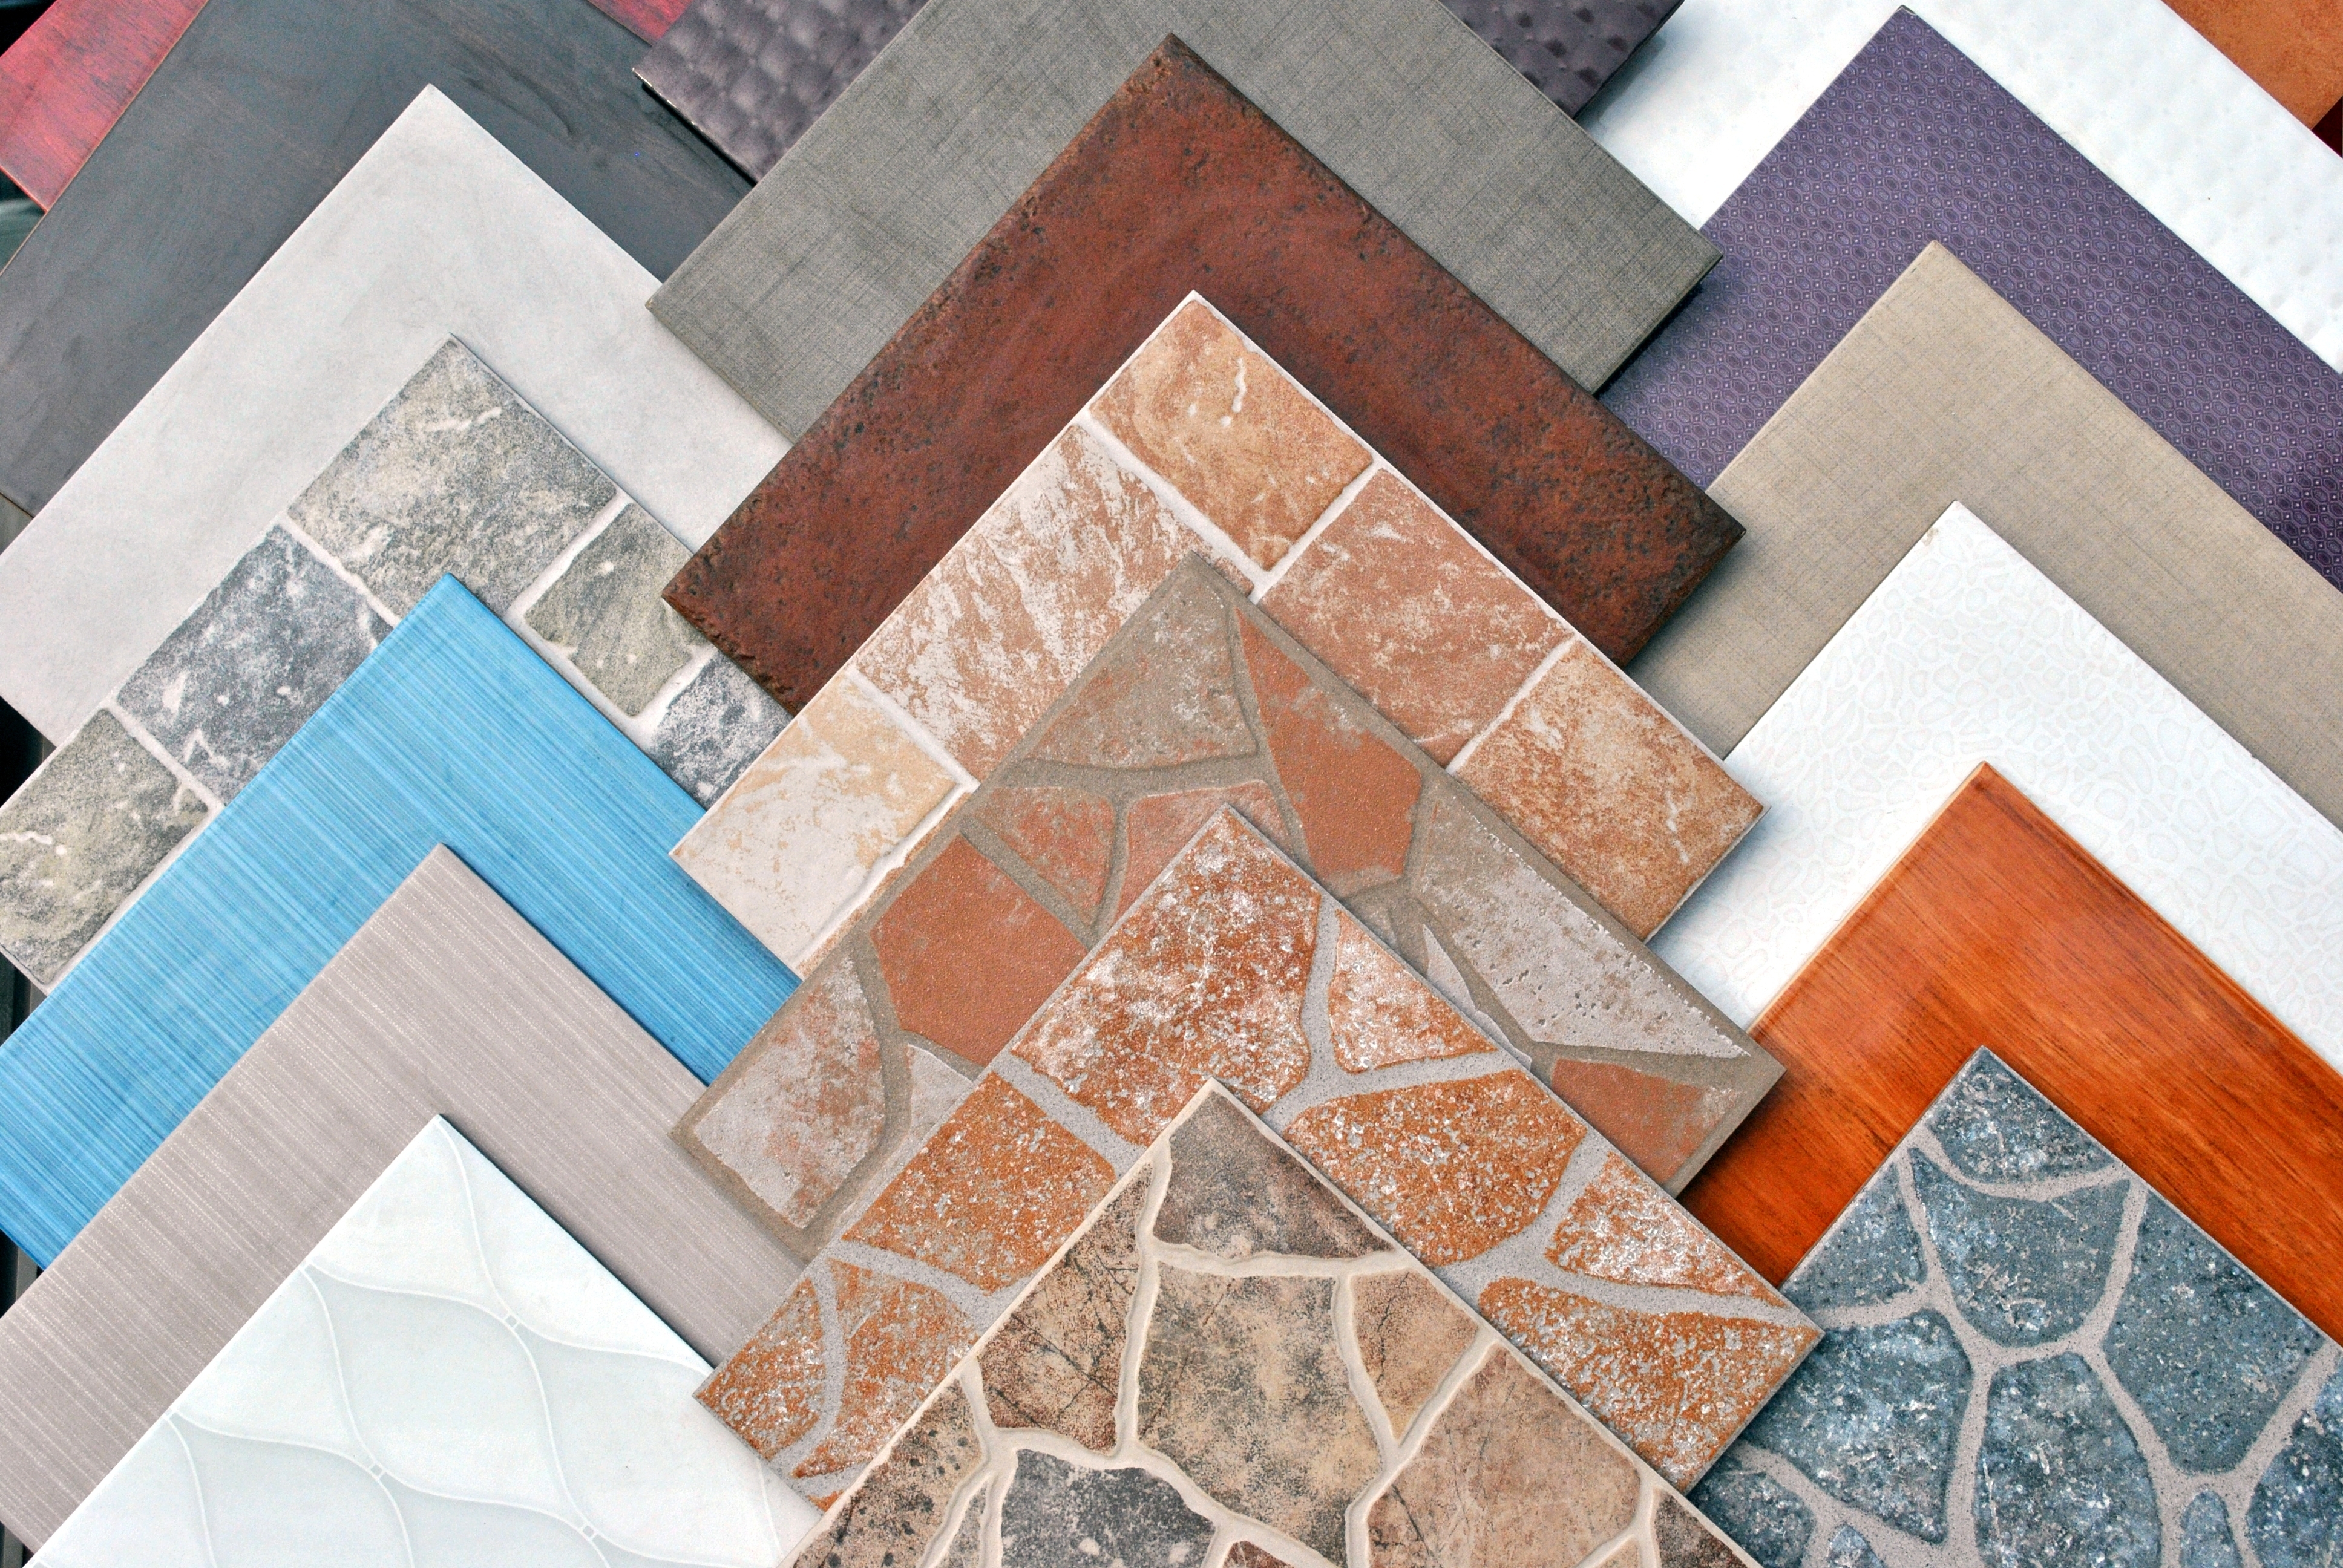 Ceramic Vs Porcelain Tile Which Is Better For Your Home